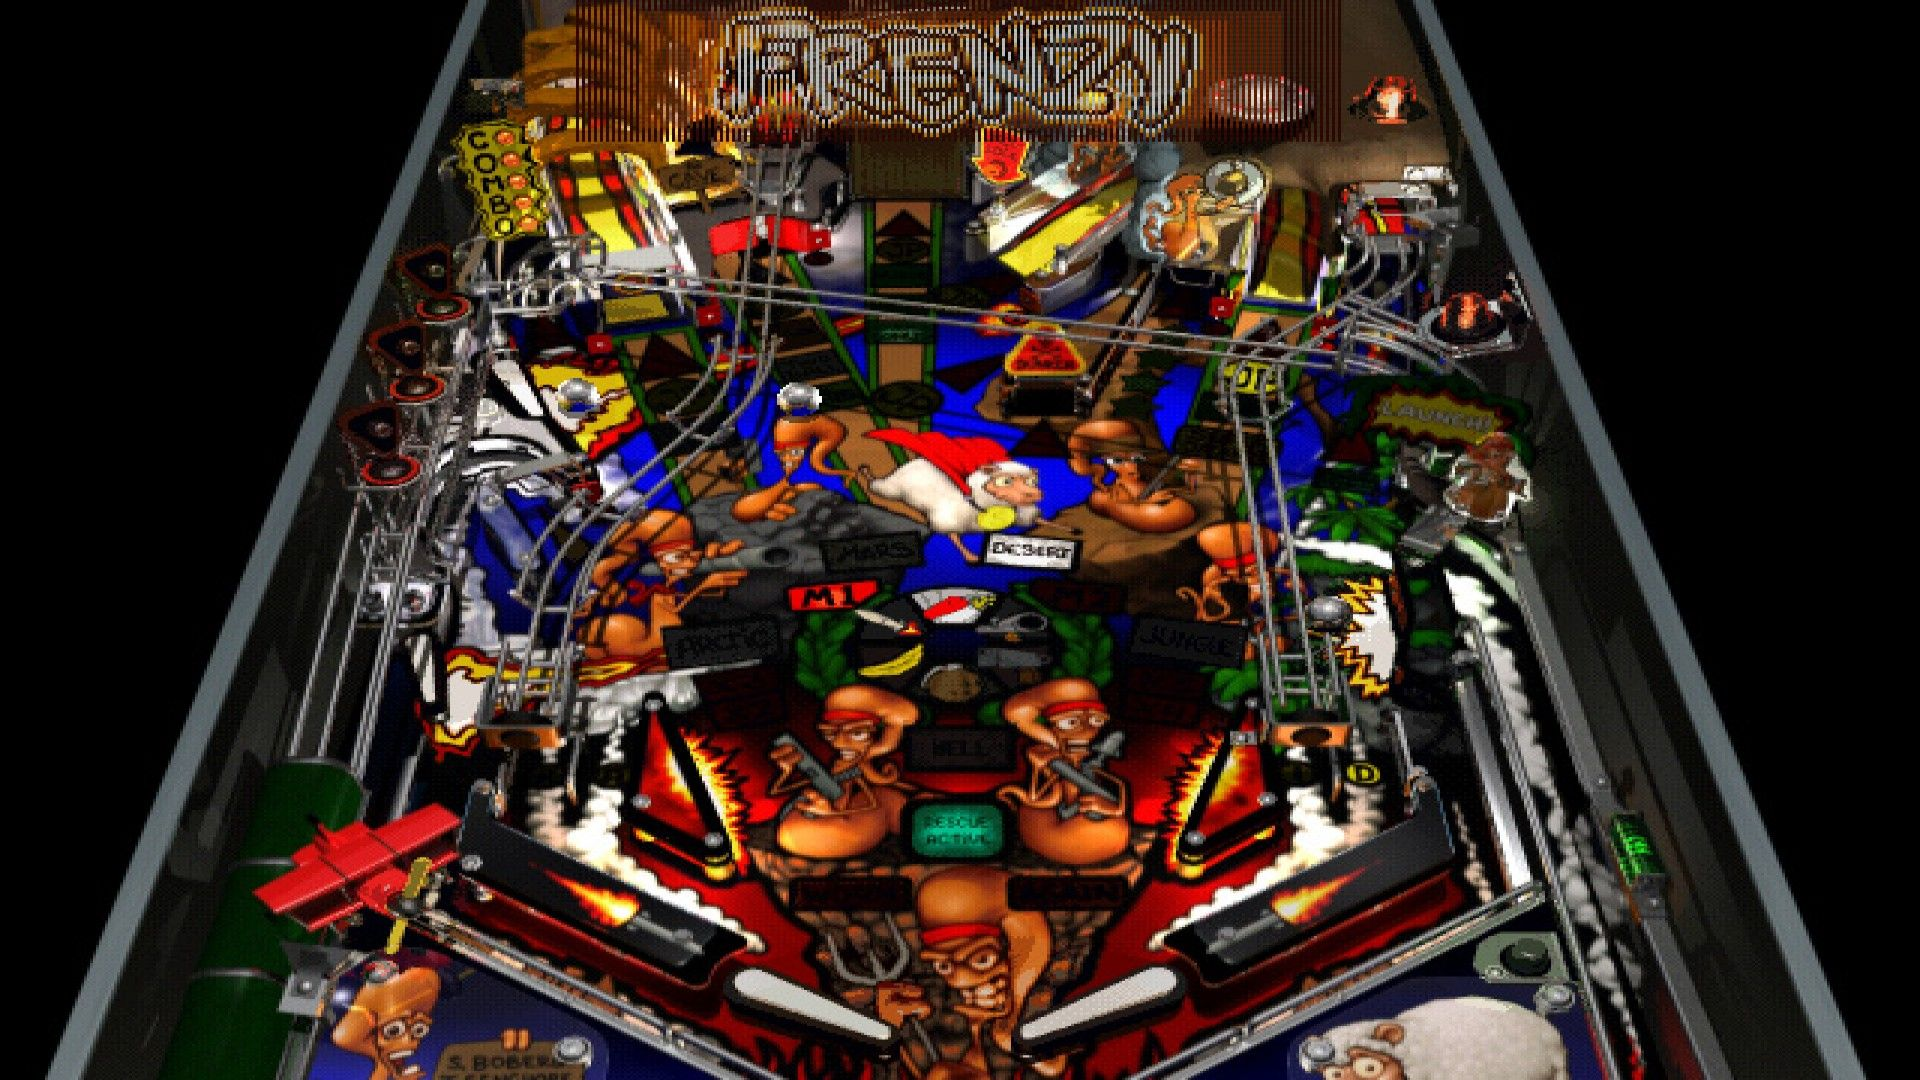 Download Worms Pinball Full Pc Game